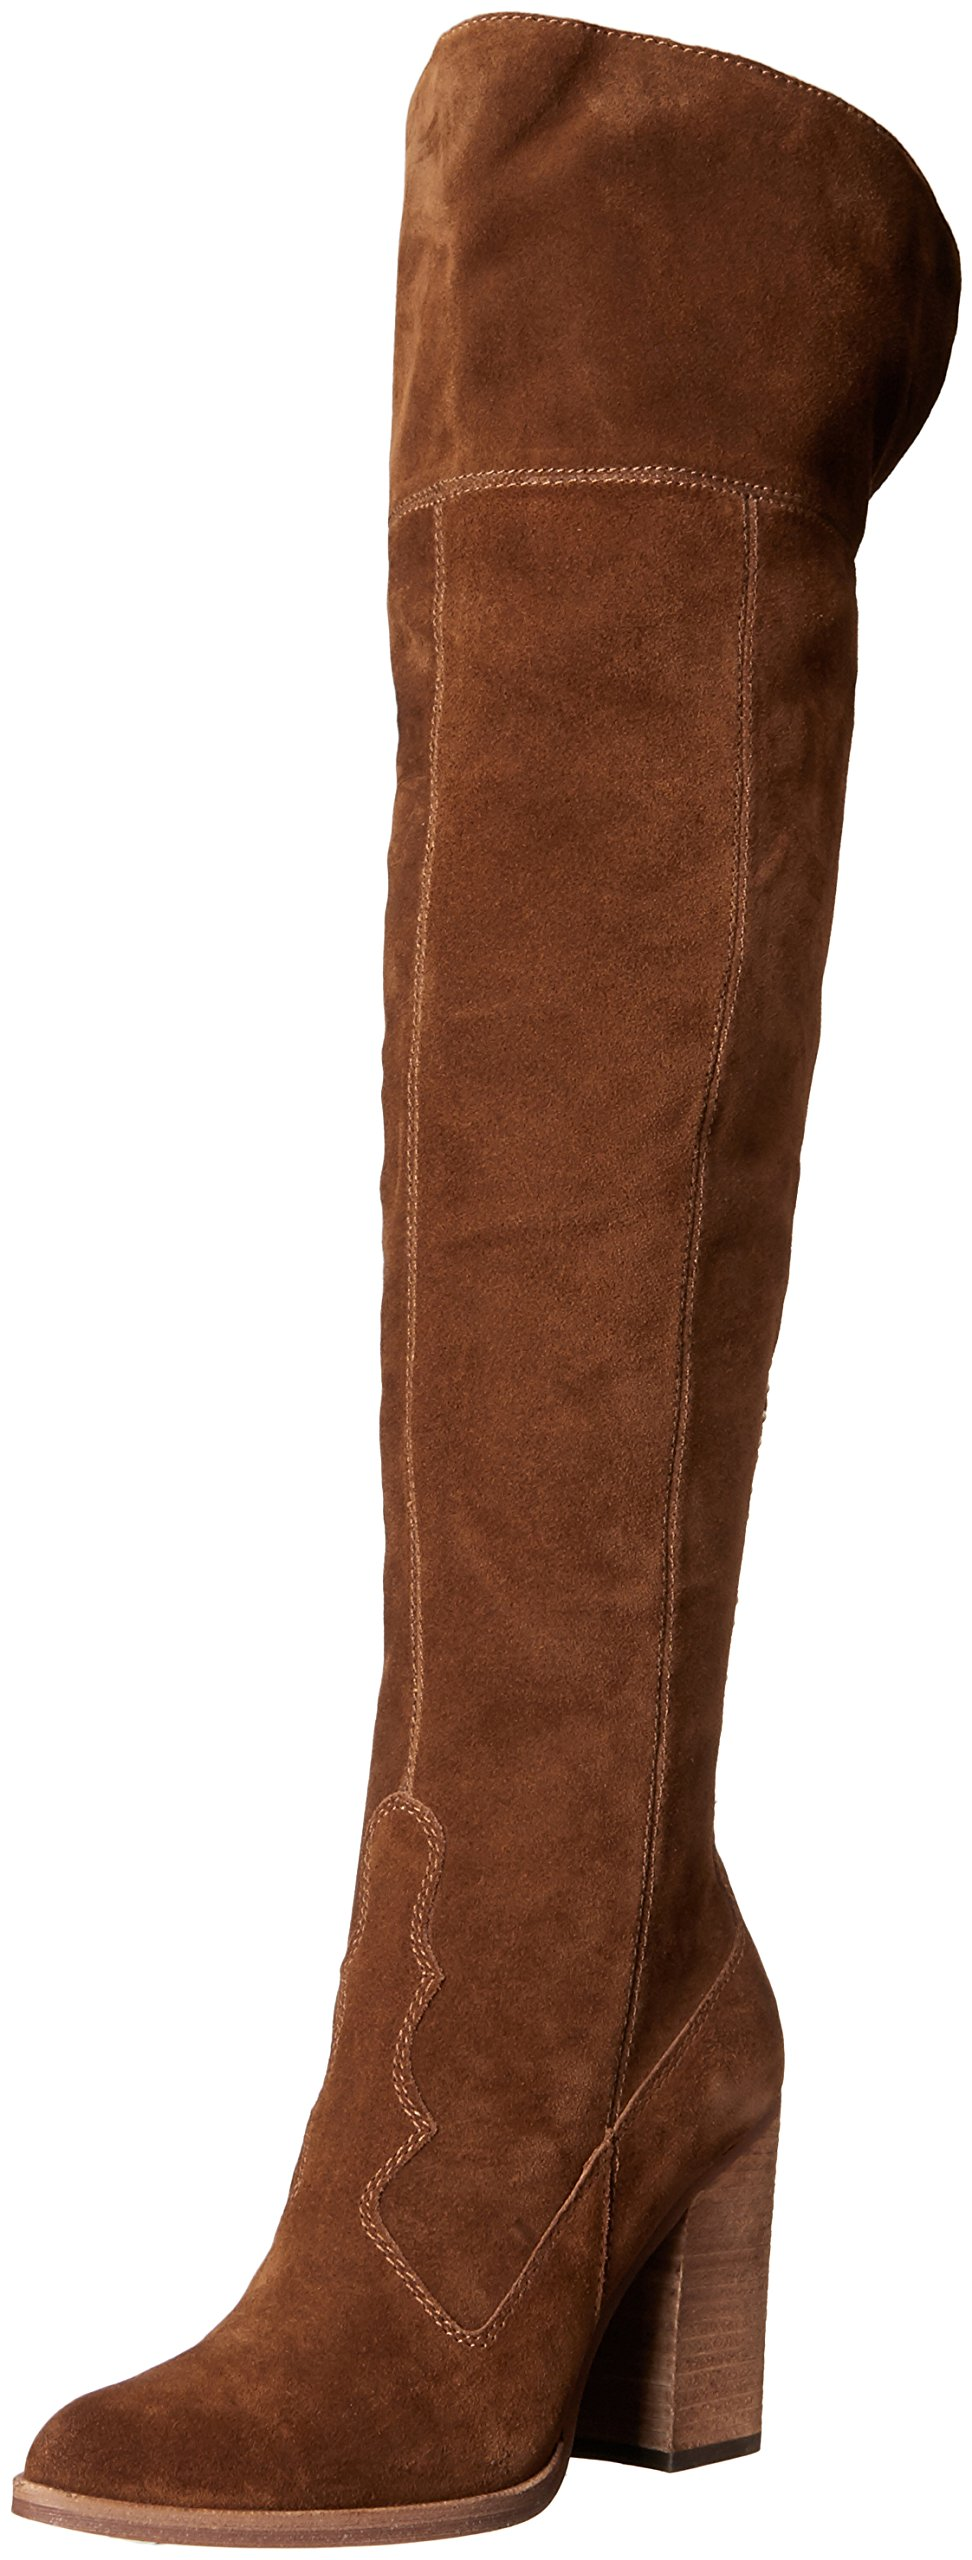 Dolce Vita Women's Cliff Western Boot, Acorn, 9.5 M US